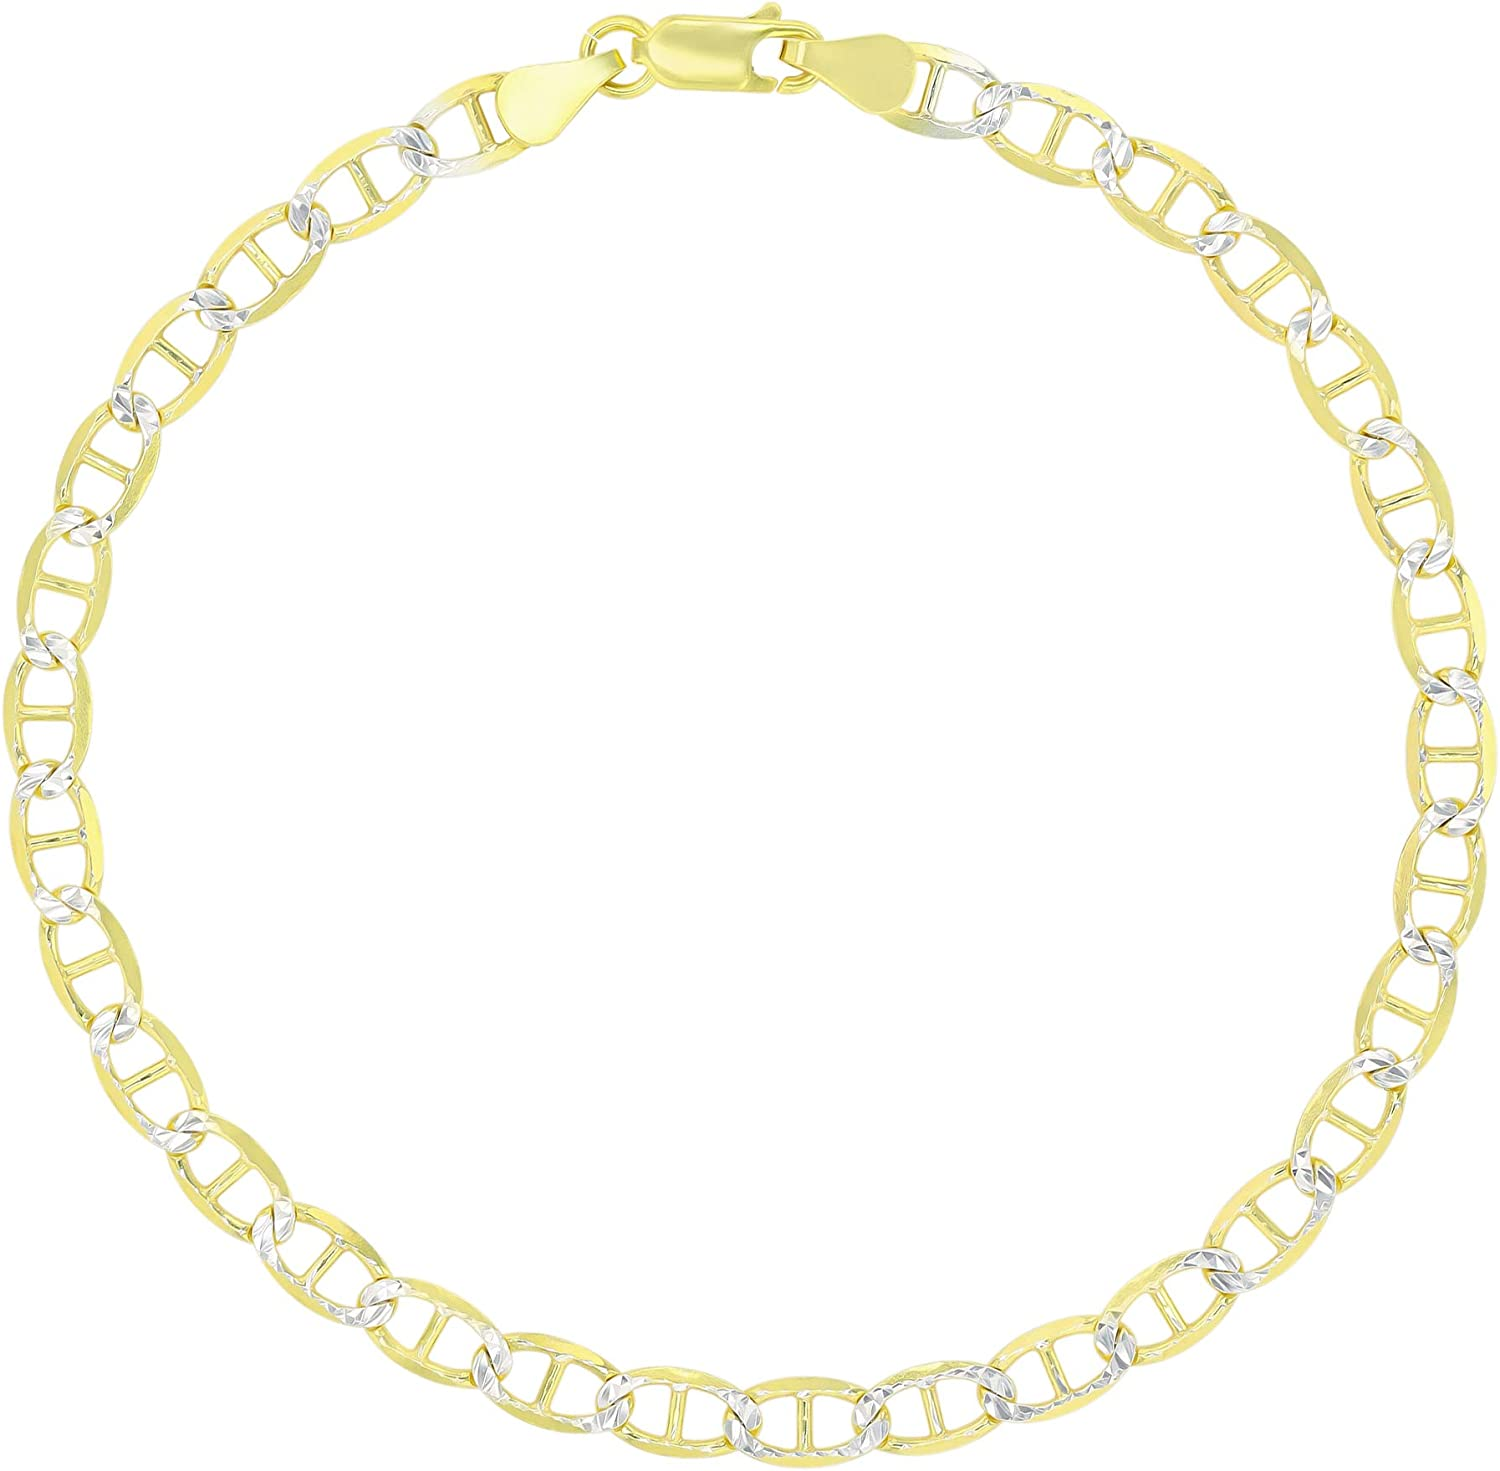 14K Gold or Rhodium Plated New product type Silver Pave Chain security Diamond Mariner Cut